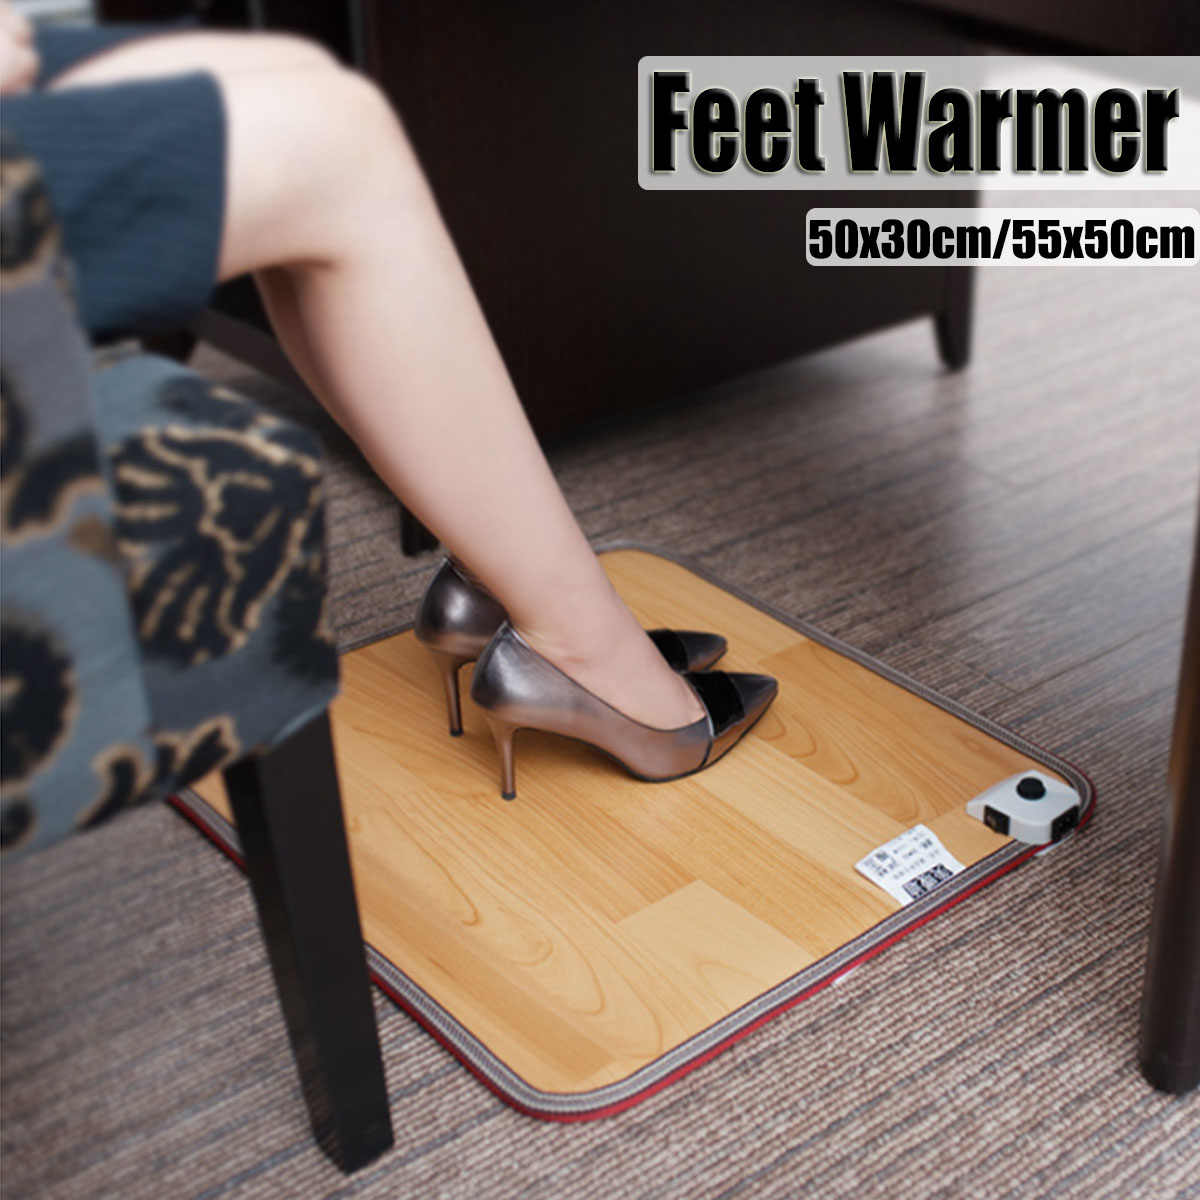 Foot Feet Warmer Electric Heating Mat Office Warm Feet Thermostat Heating Pad Home Heated Floor Carpet 50x30cm / 55x50cm